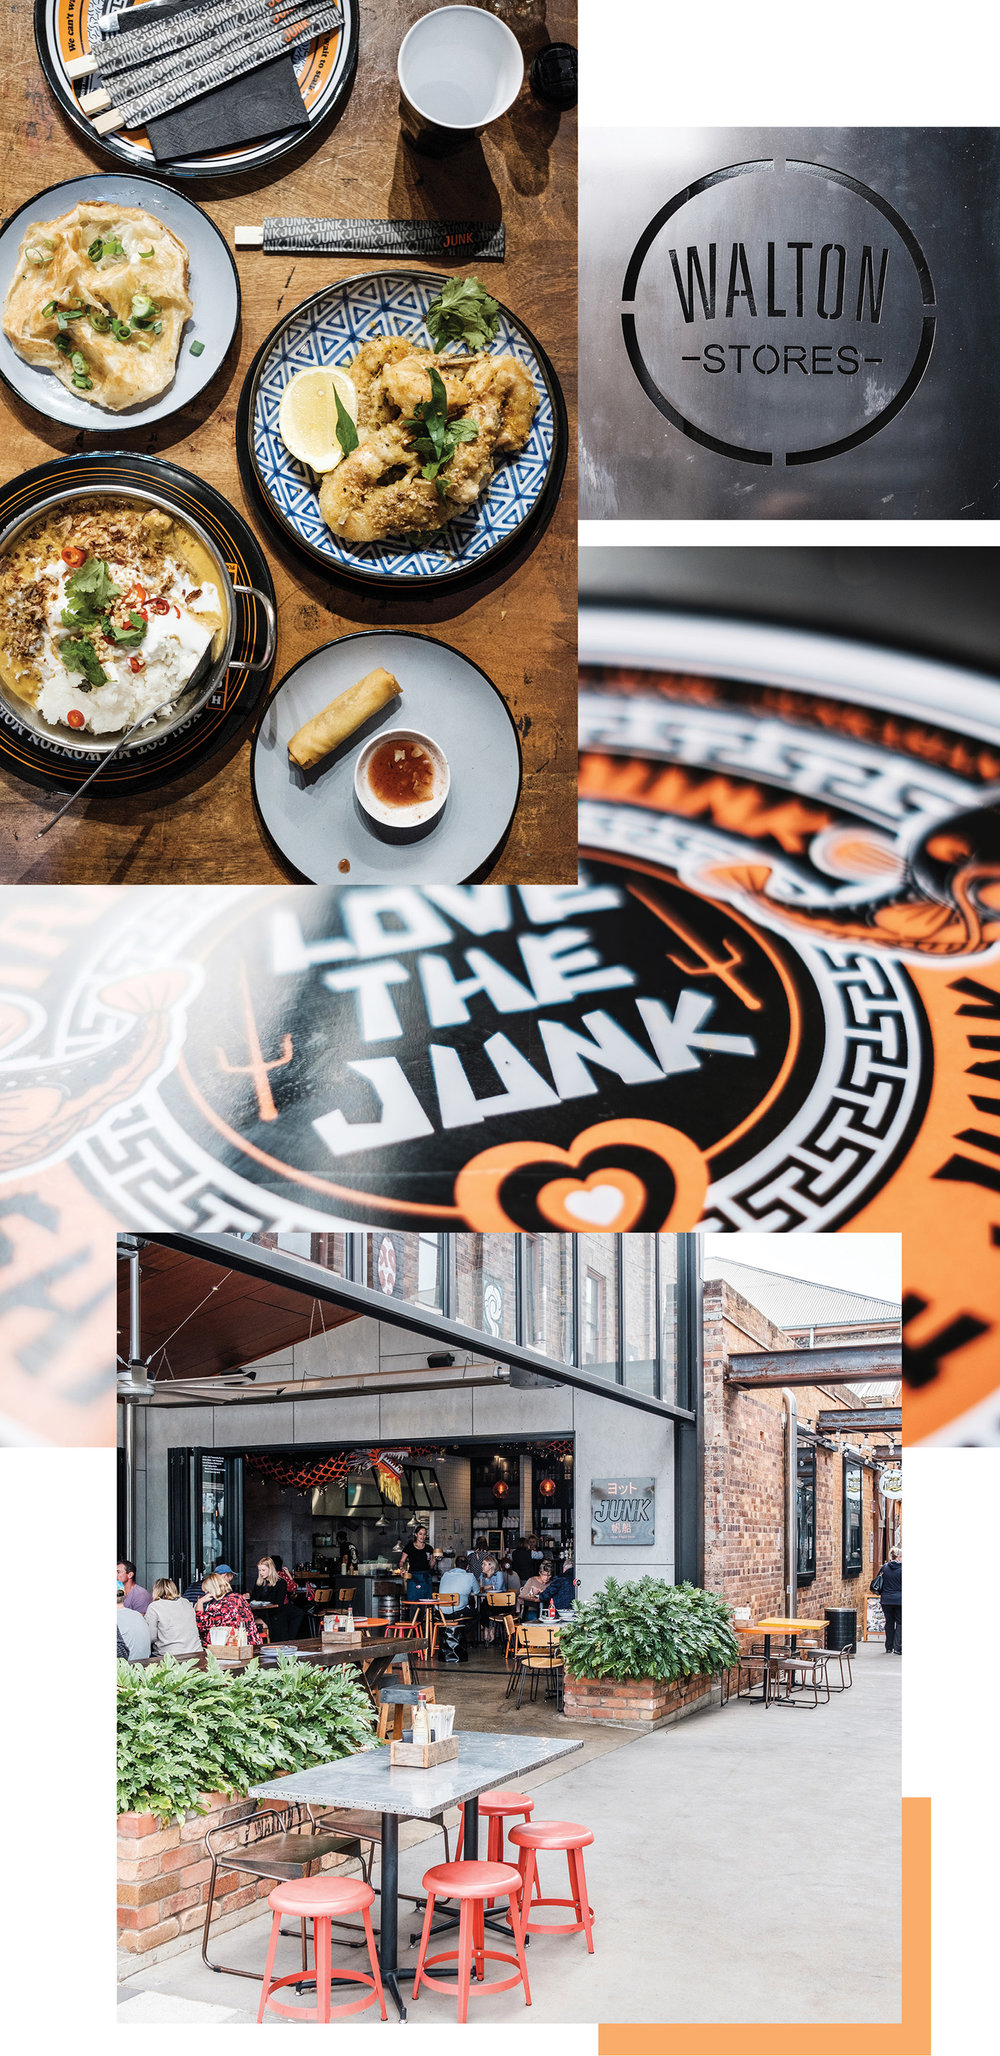 adore_home_blog_Junk_asian_street_food_TOOWOOMBA_CITY_GUIDE_japanese_gardens_USQ_ground_up_espresso_bar_cafe_laneway_culture_street_art.jpg